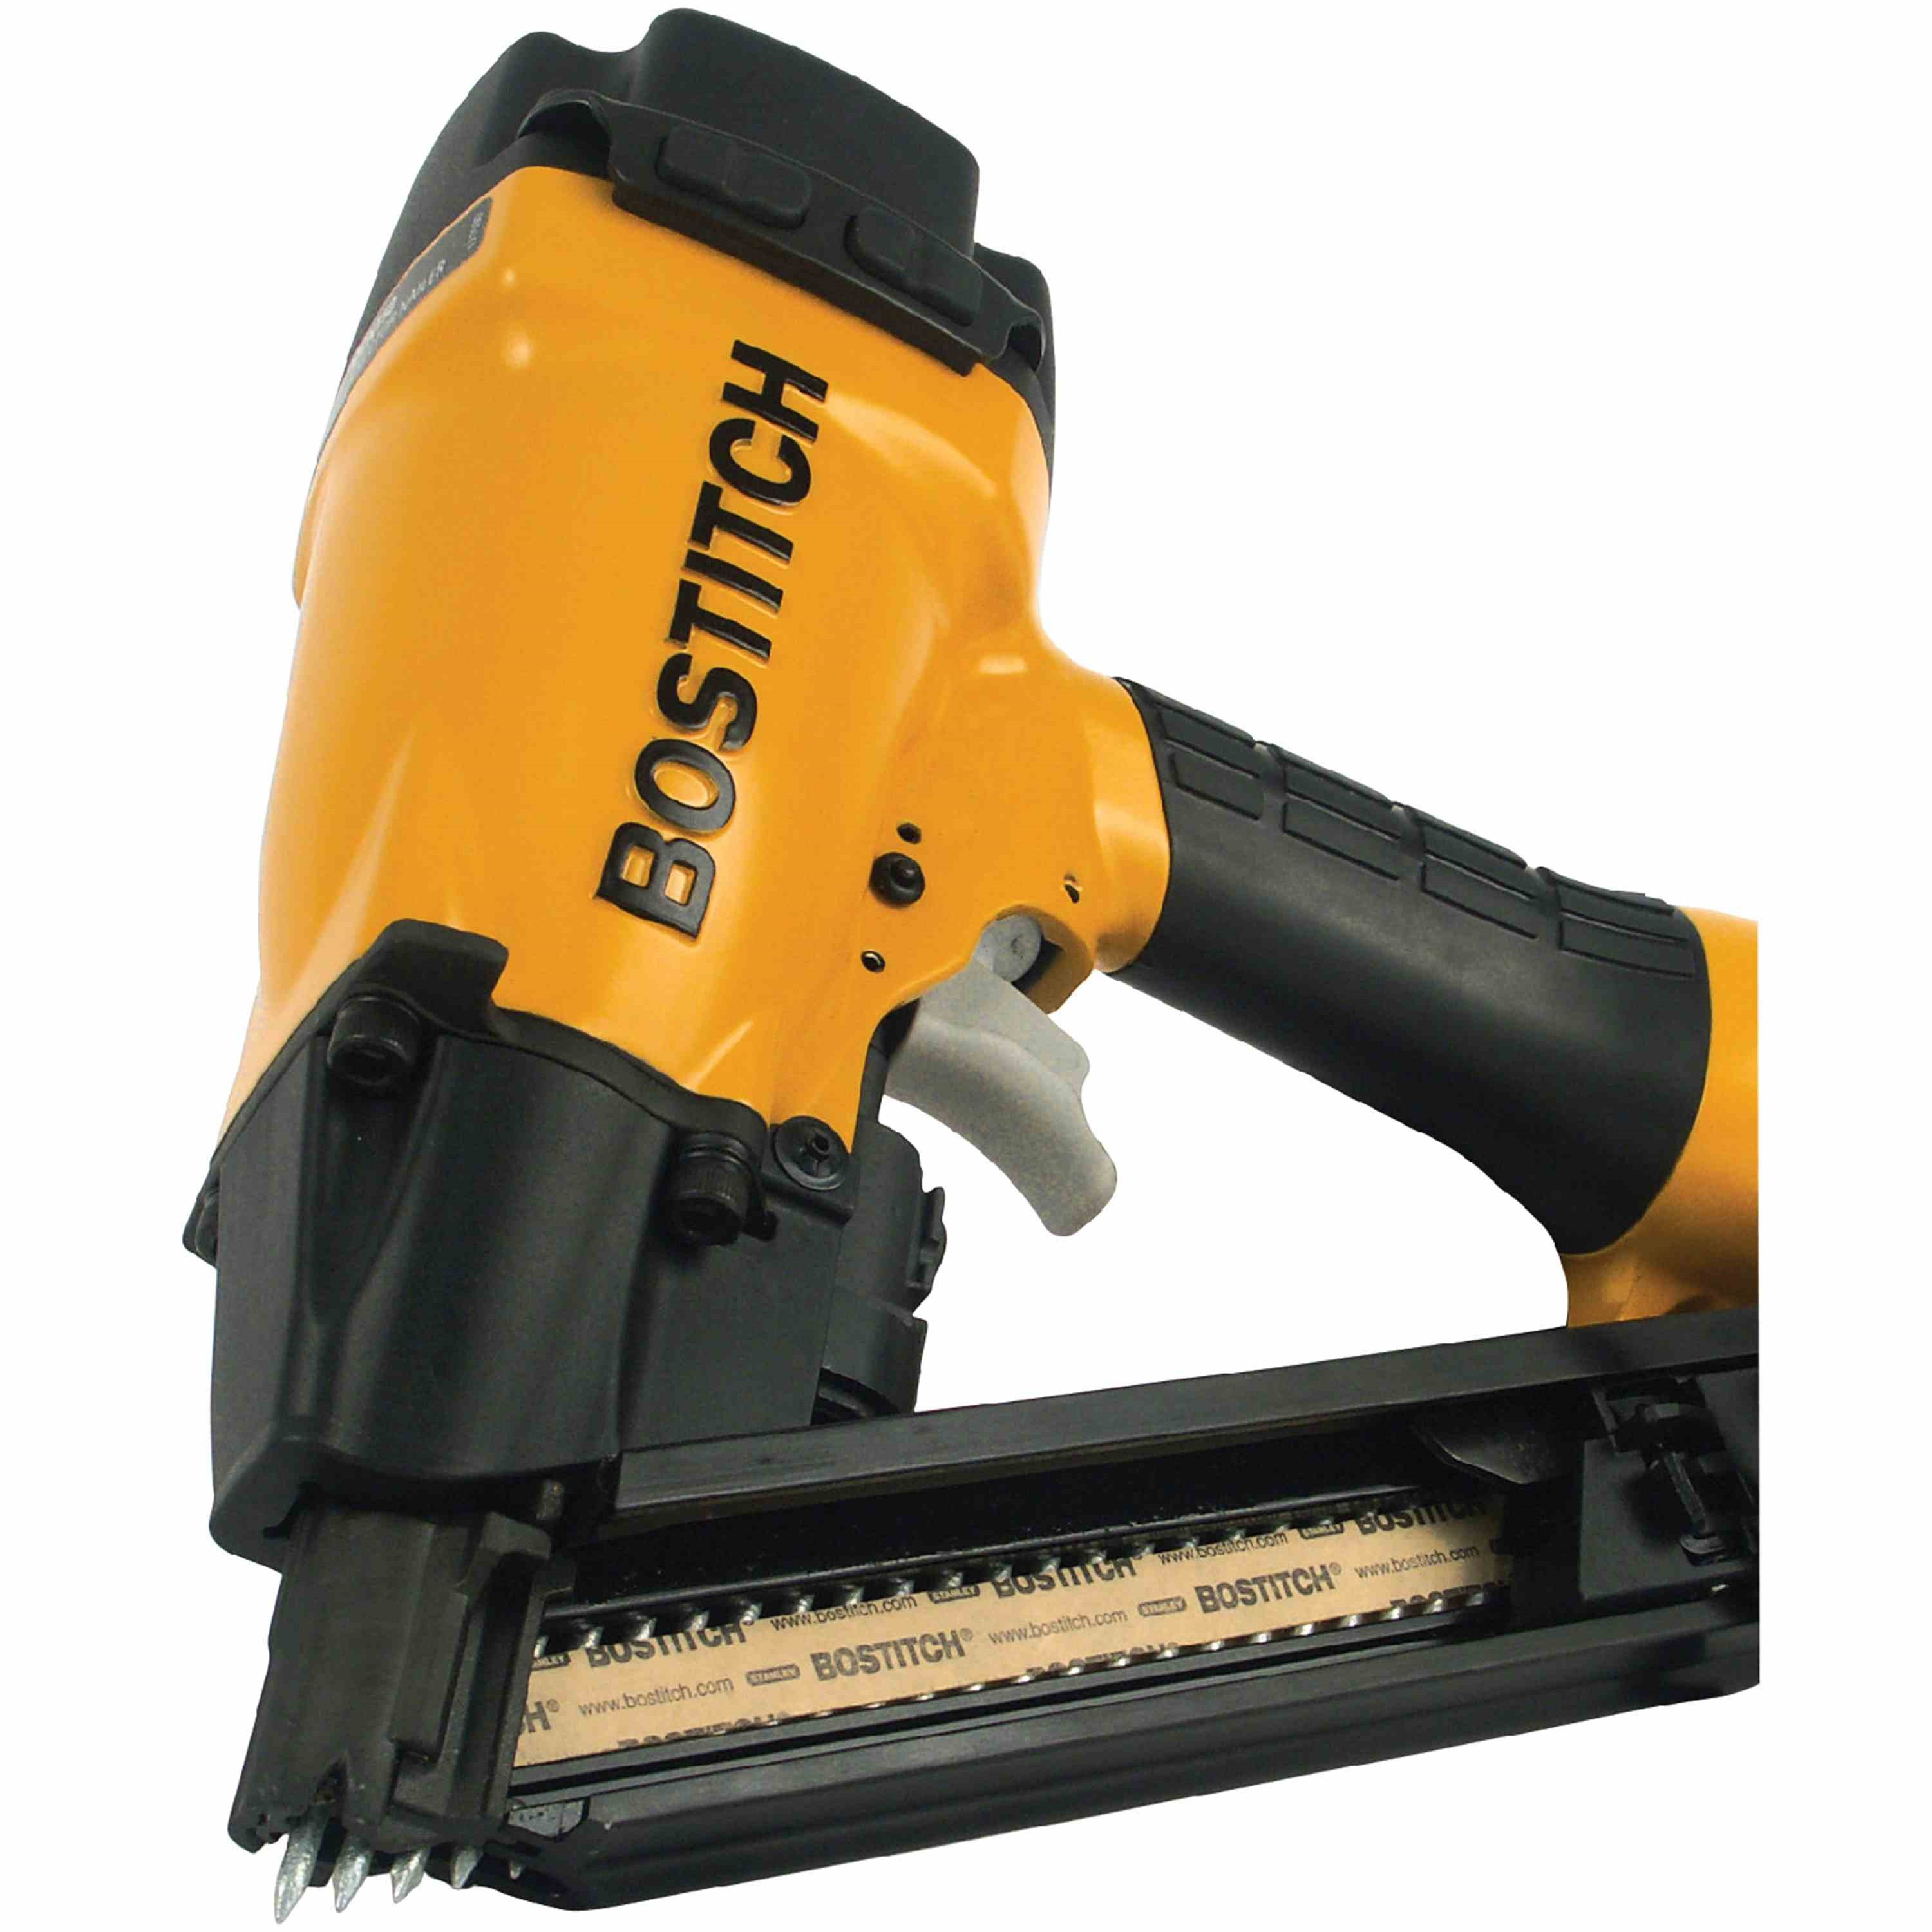 Bostitch - STRAPSHOT Metal Connector Nailer - MCN150